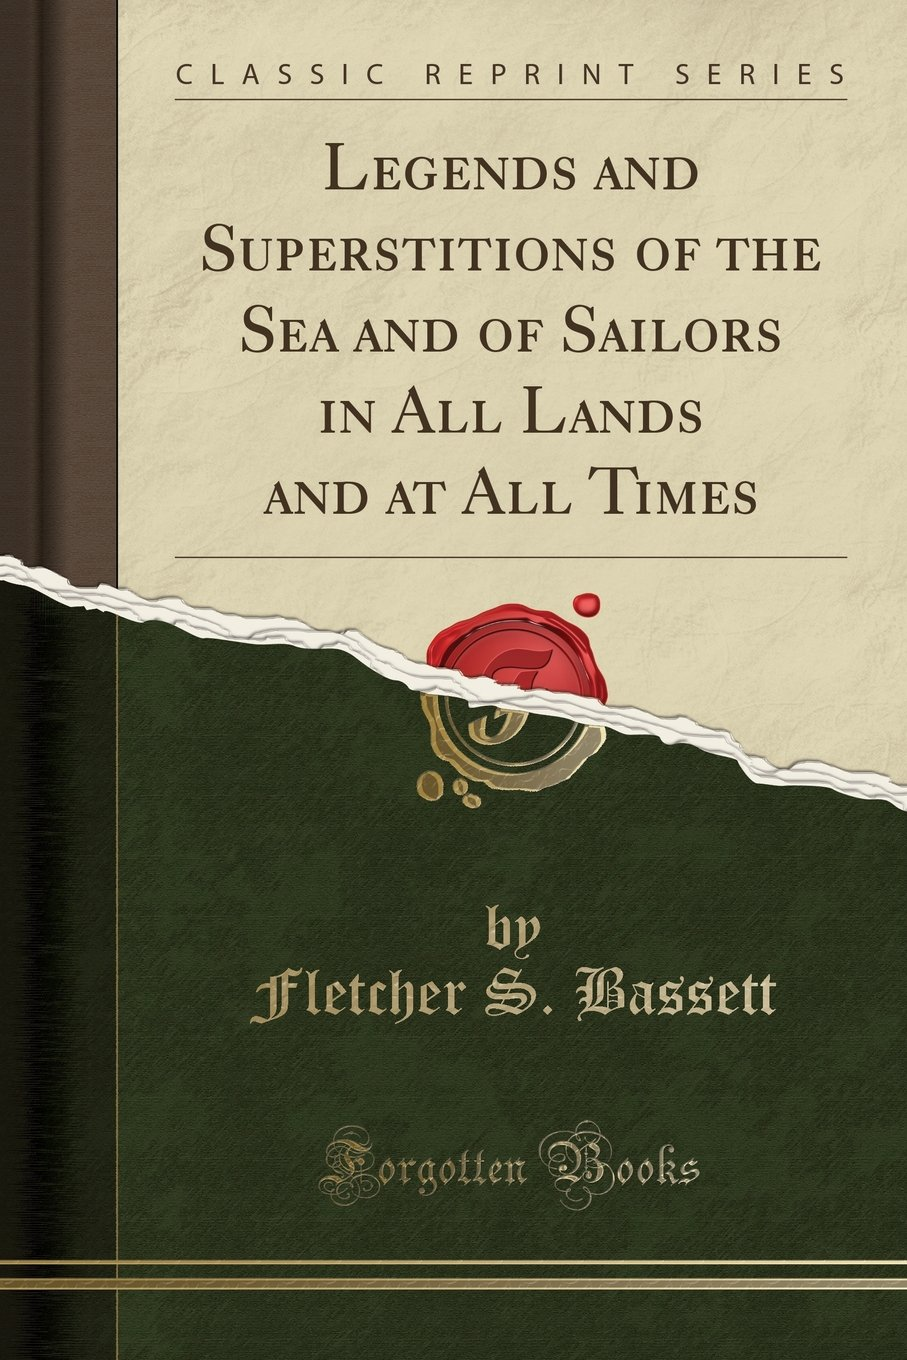 Download Legends and Superstitions of the Sea and of Sailors in All Lands and at All Times (Classic Reprint) pdf